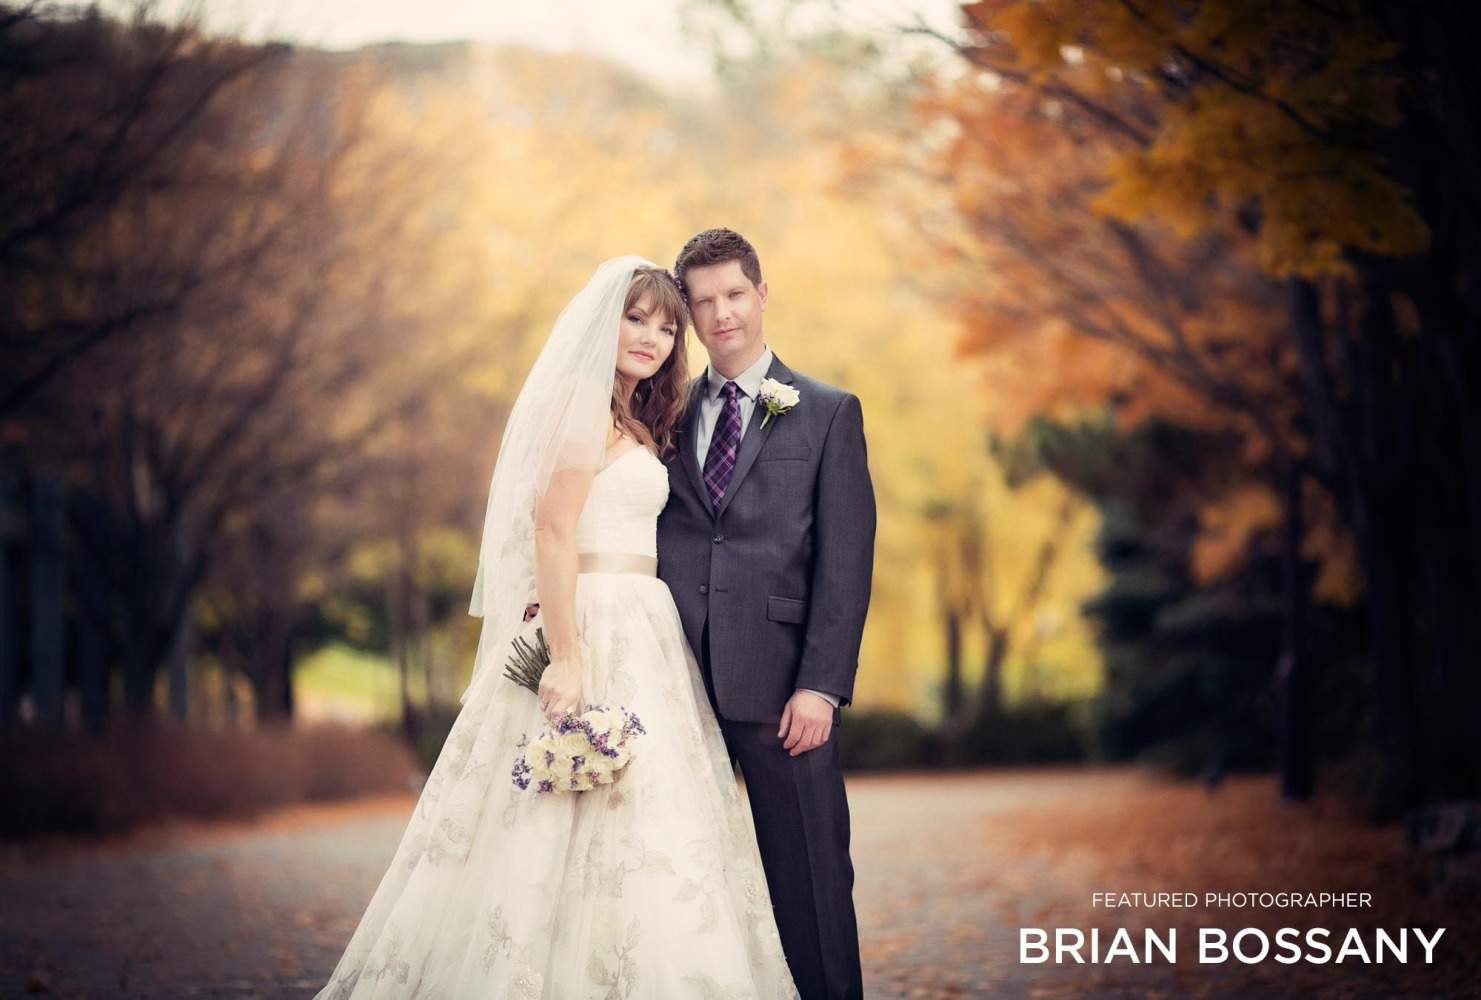 Brian Bossany - Featured Photographer